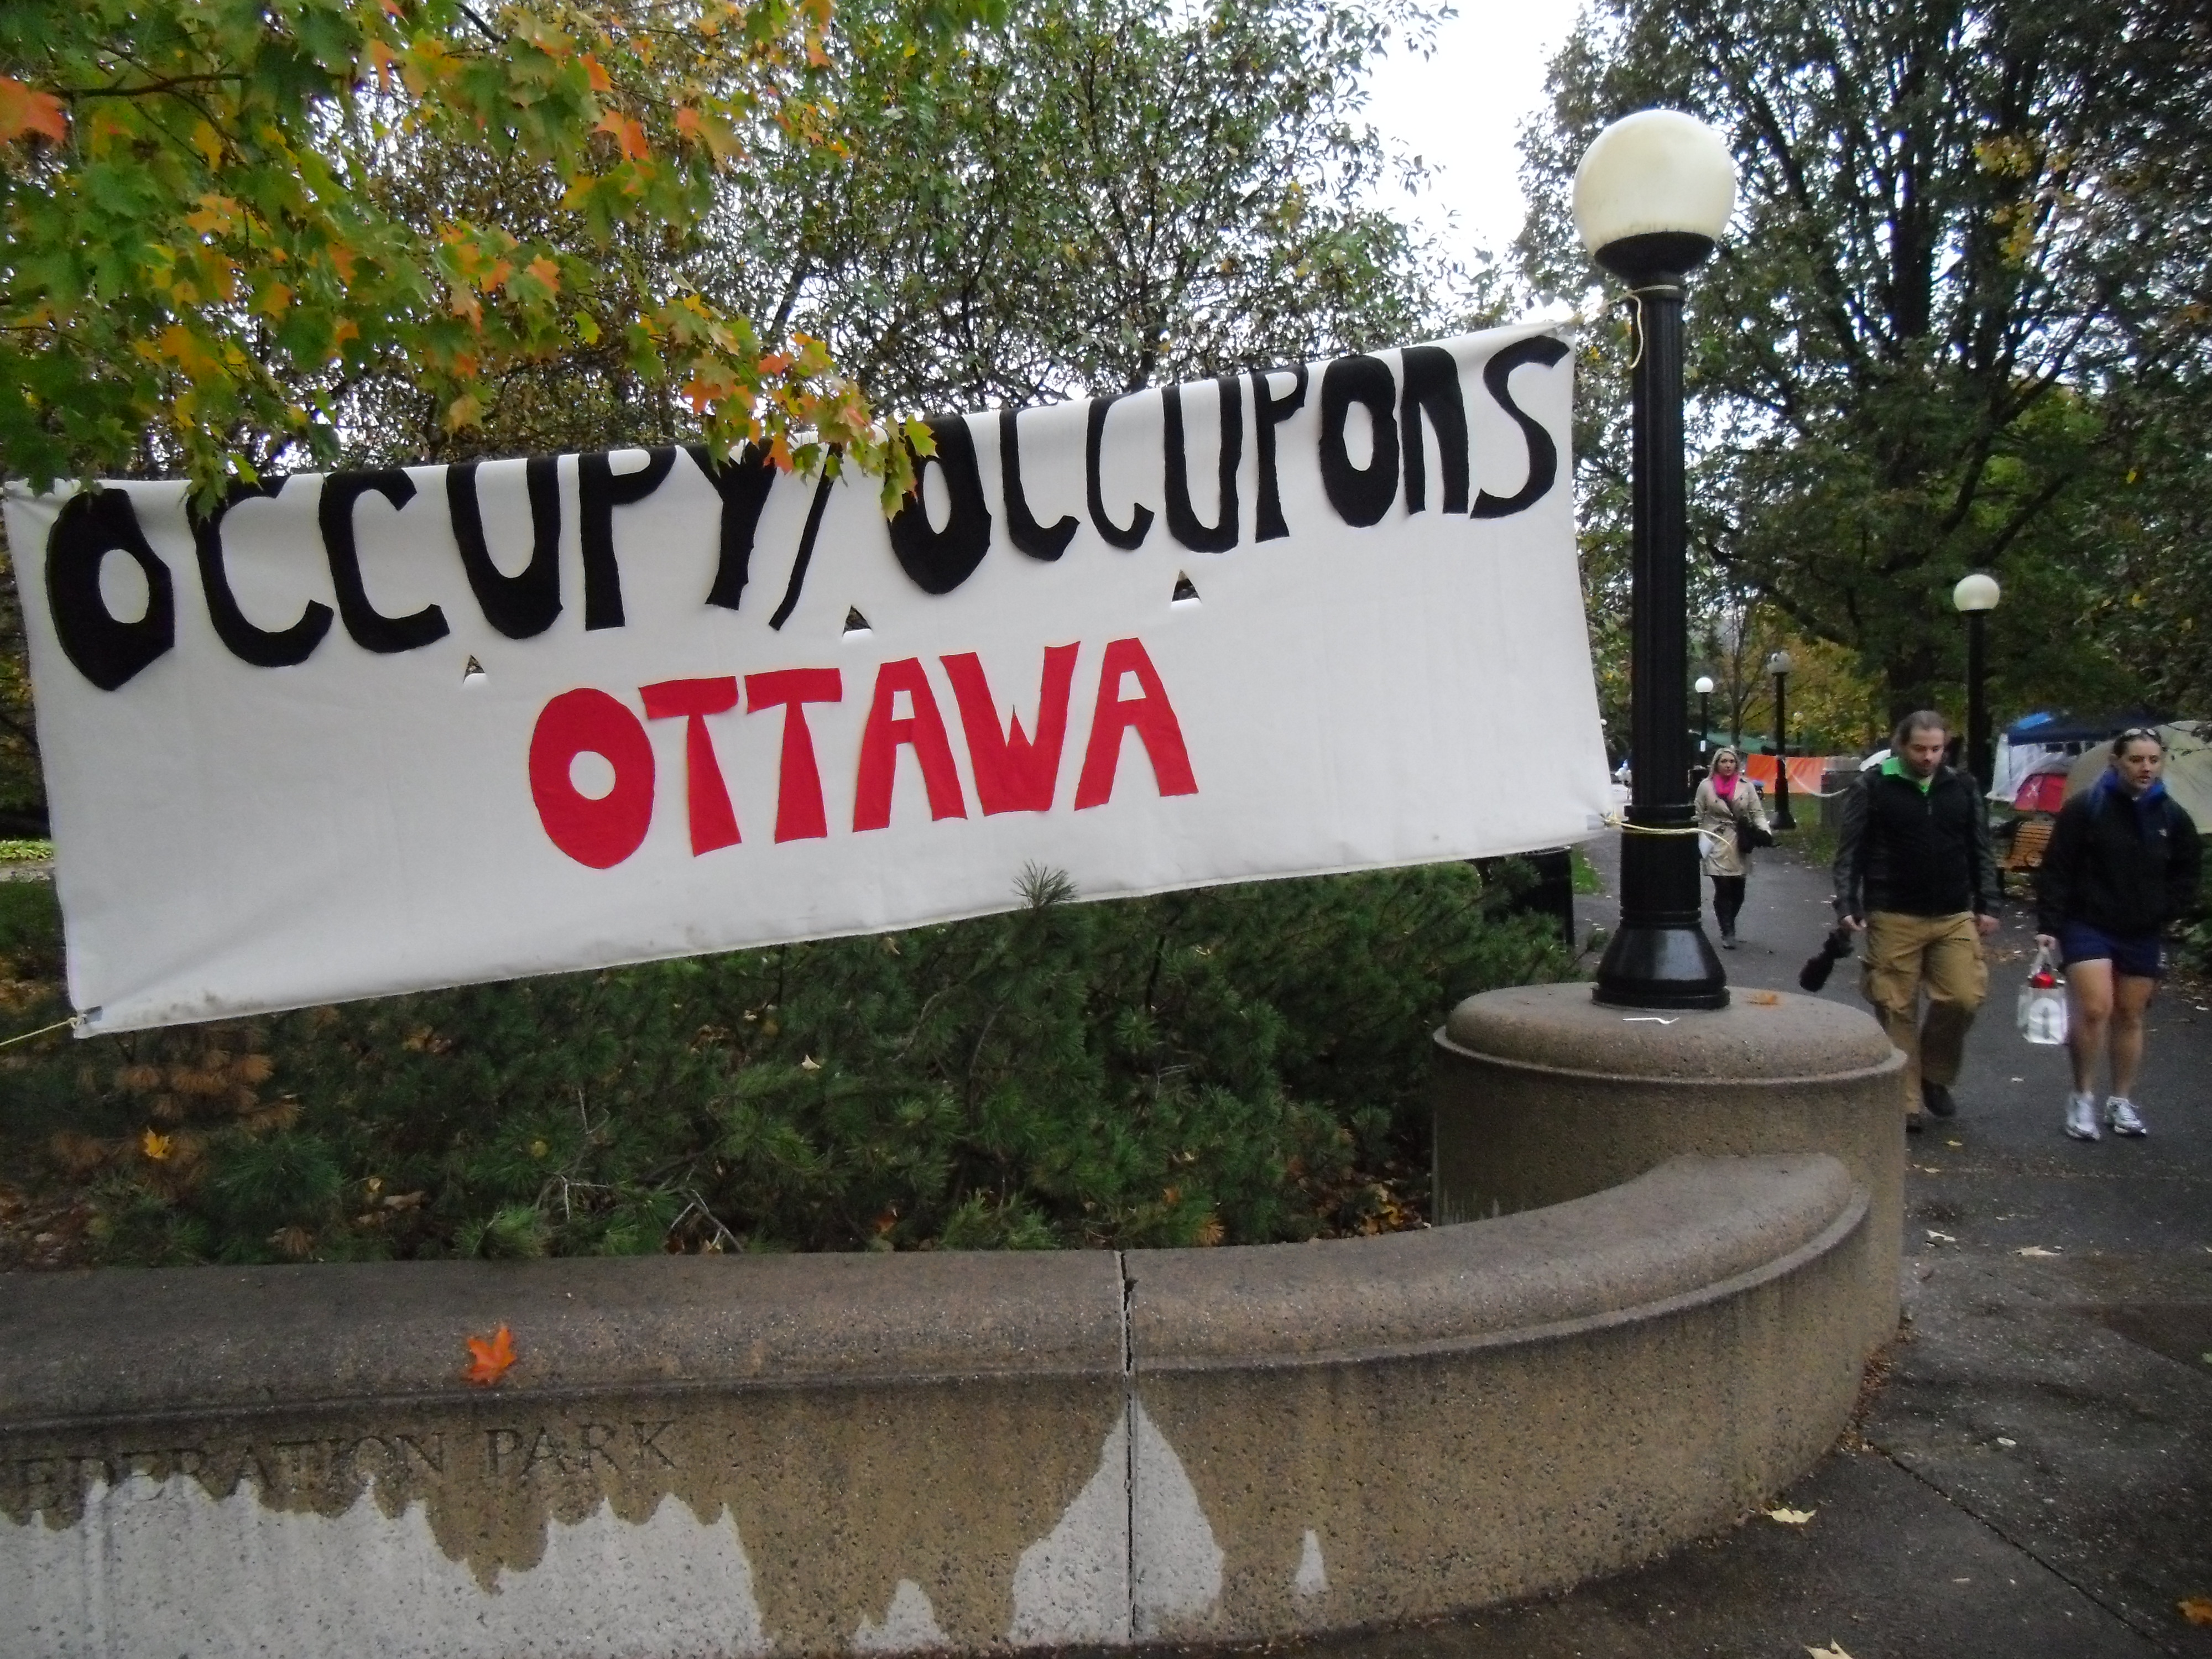 Occupy Ottawa - A Confederation Park Elgin utcai bejrata